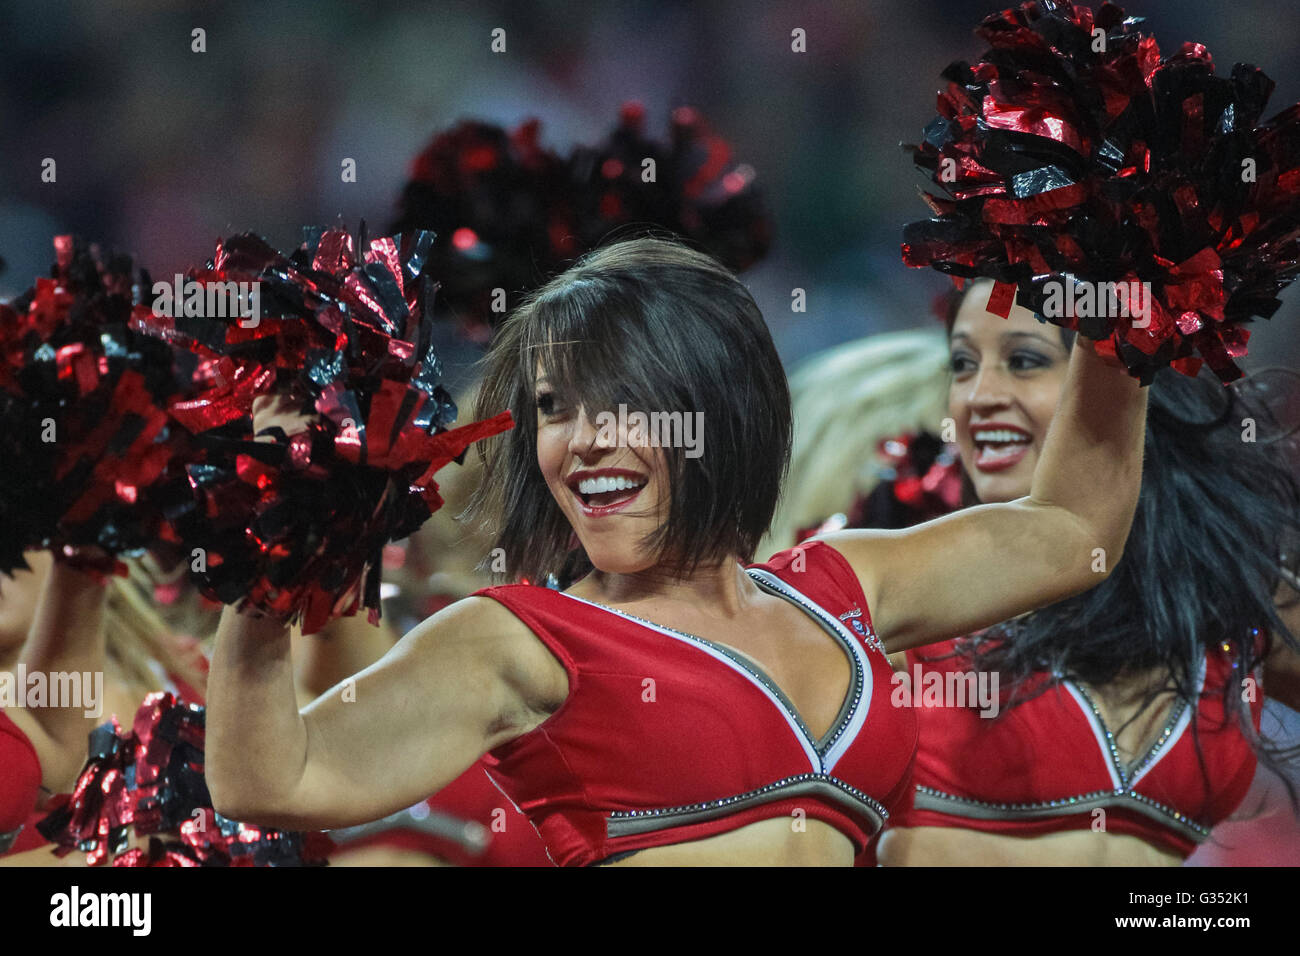 Cheerleaders of the Tampa Bay Buccaneers dance during the NFL International game between the Tampa Bay Buccaneers - Stock Image